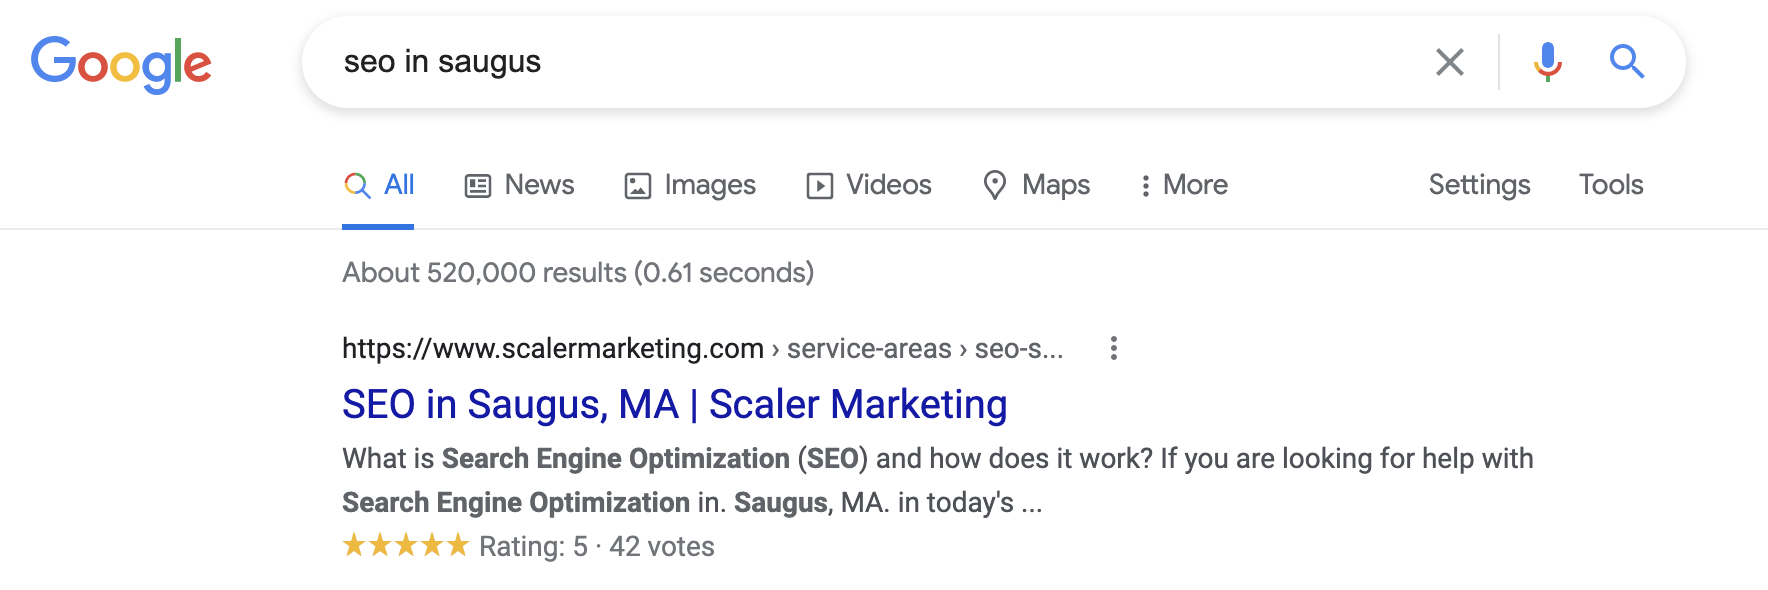 #1 Search Result for SEO in Saugus